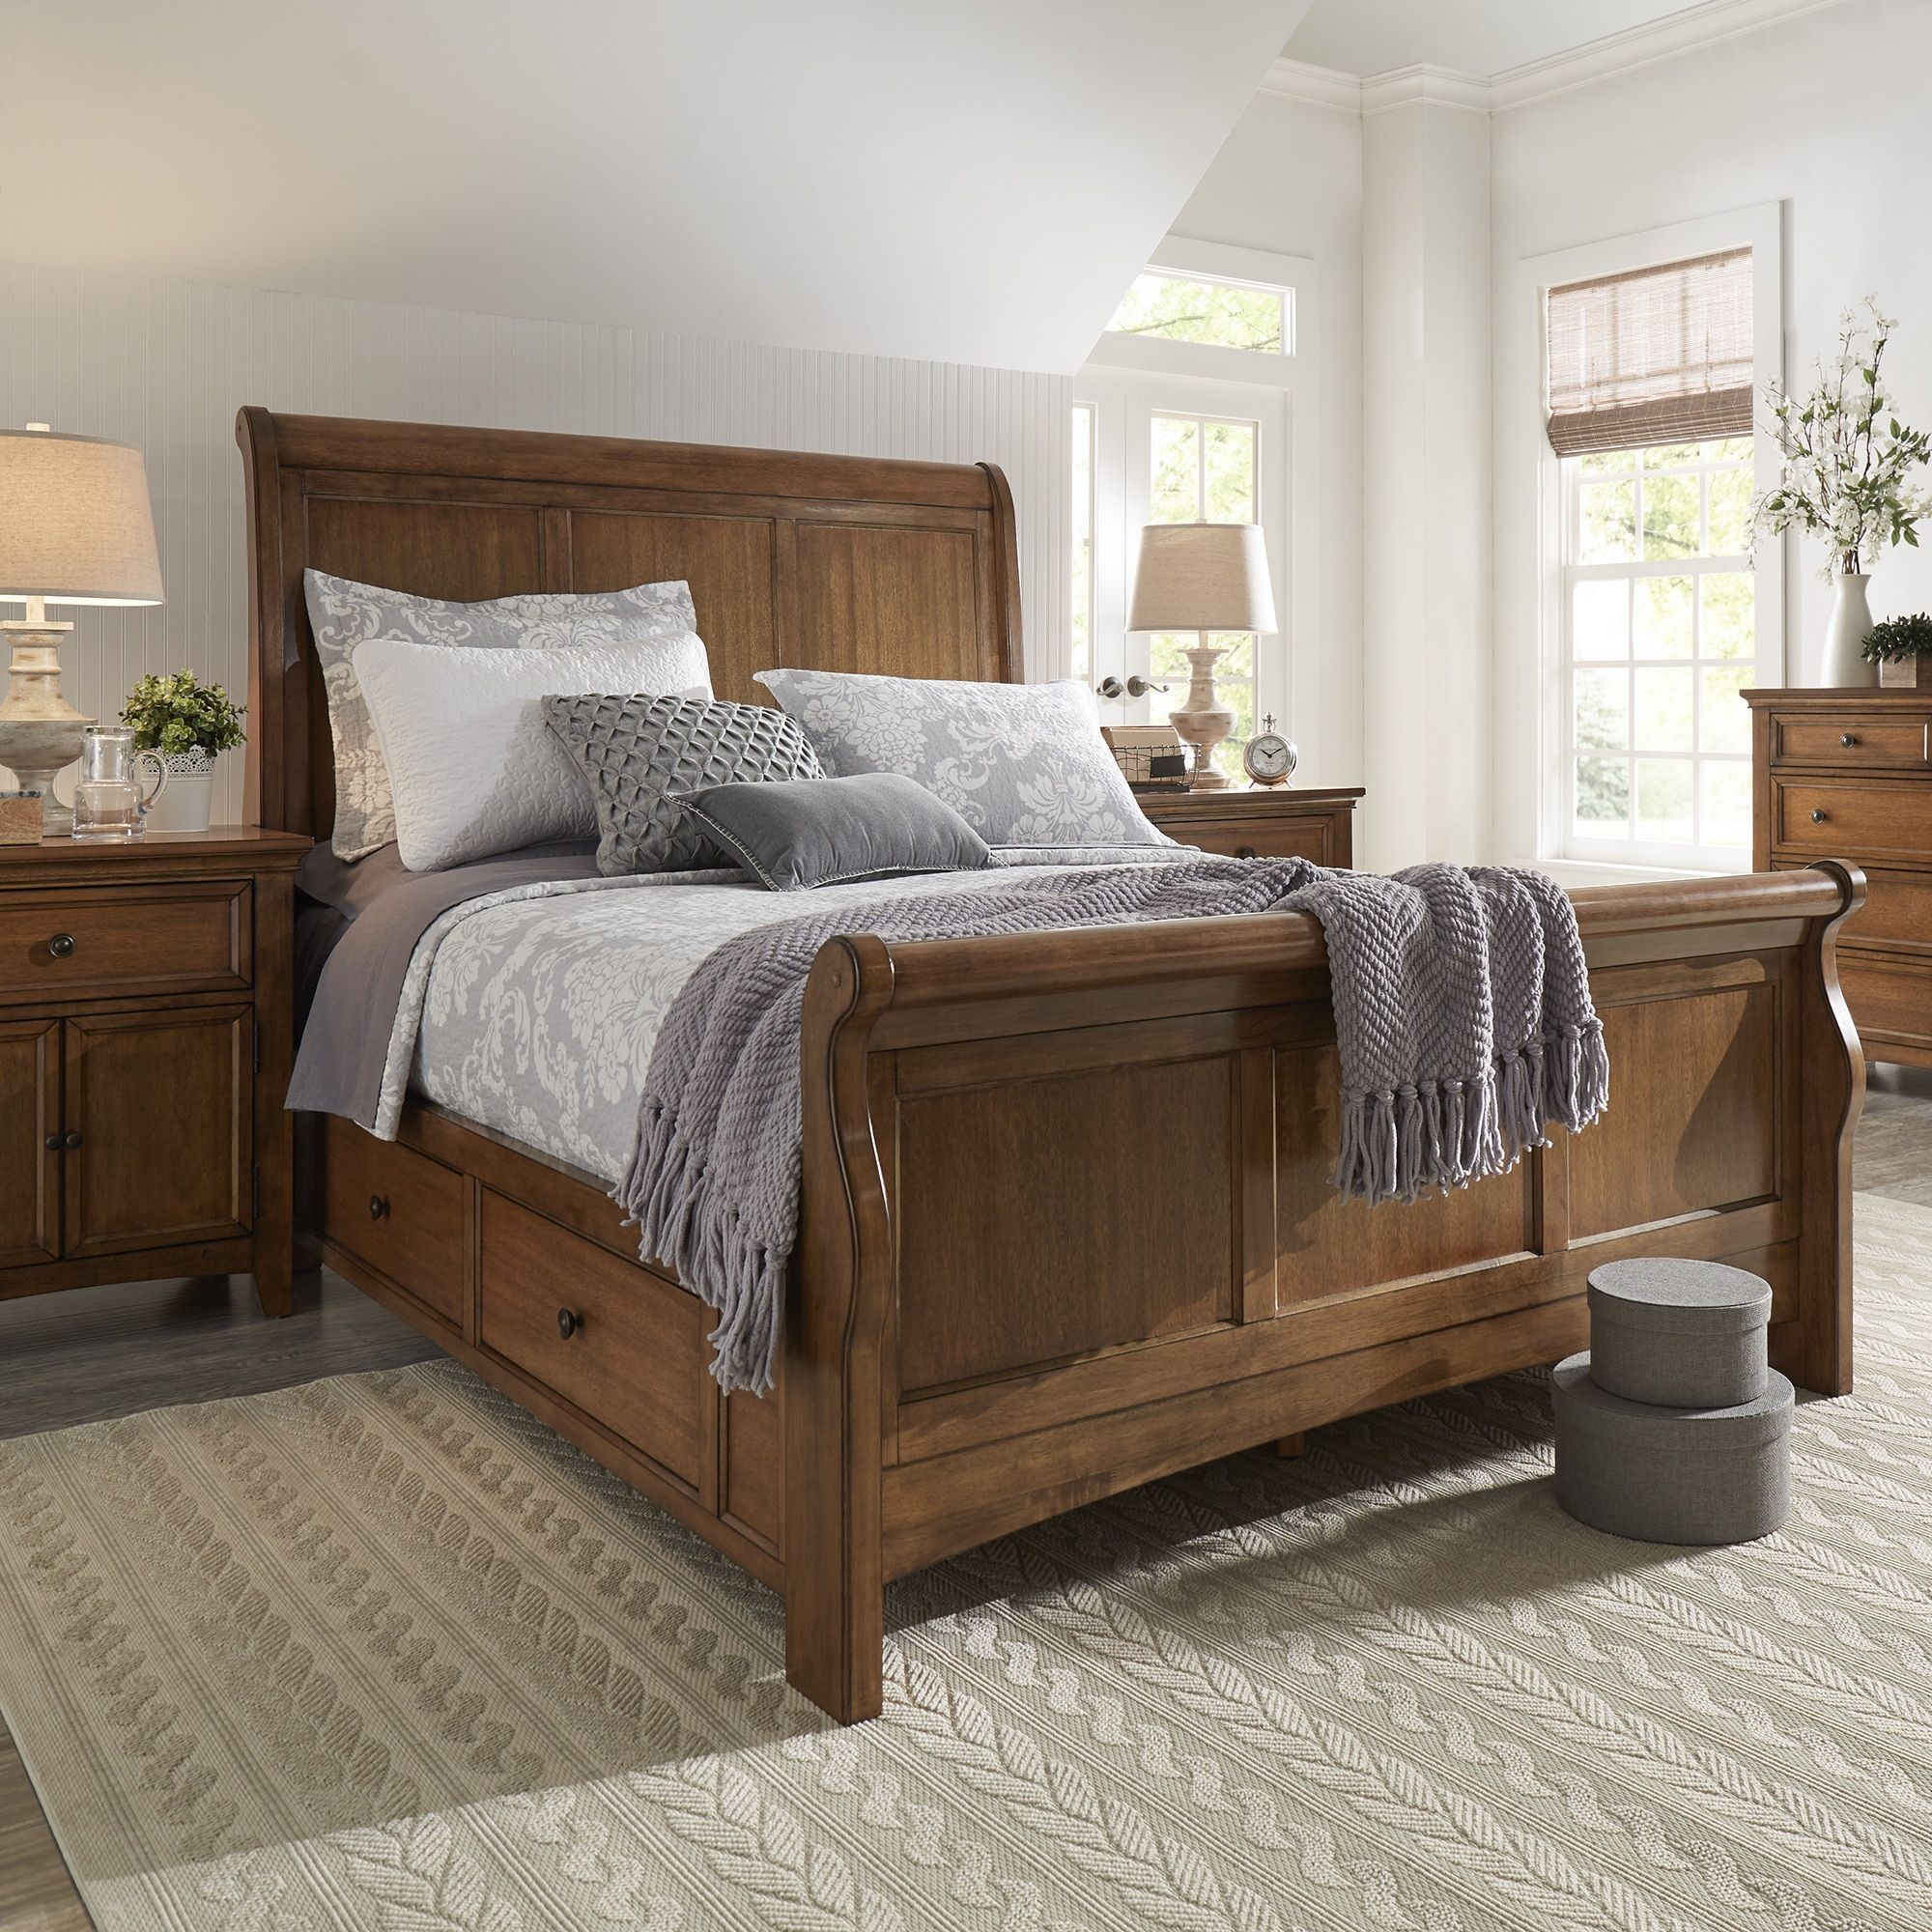 Ediline Queen Size Oak Finish Wood Storage Sleigh Bed by